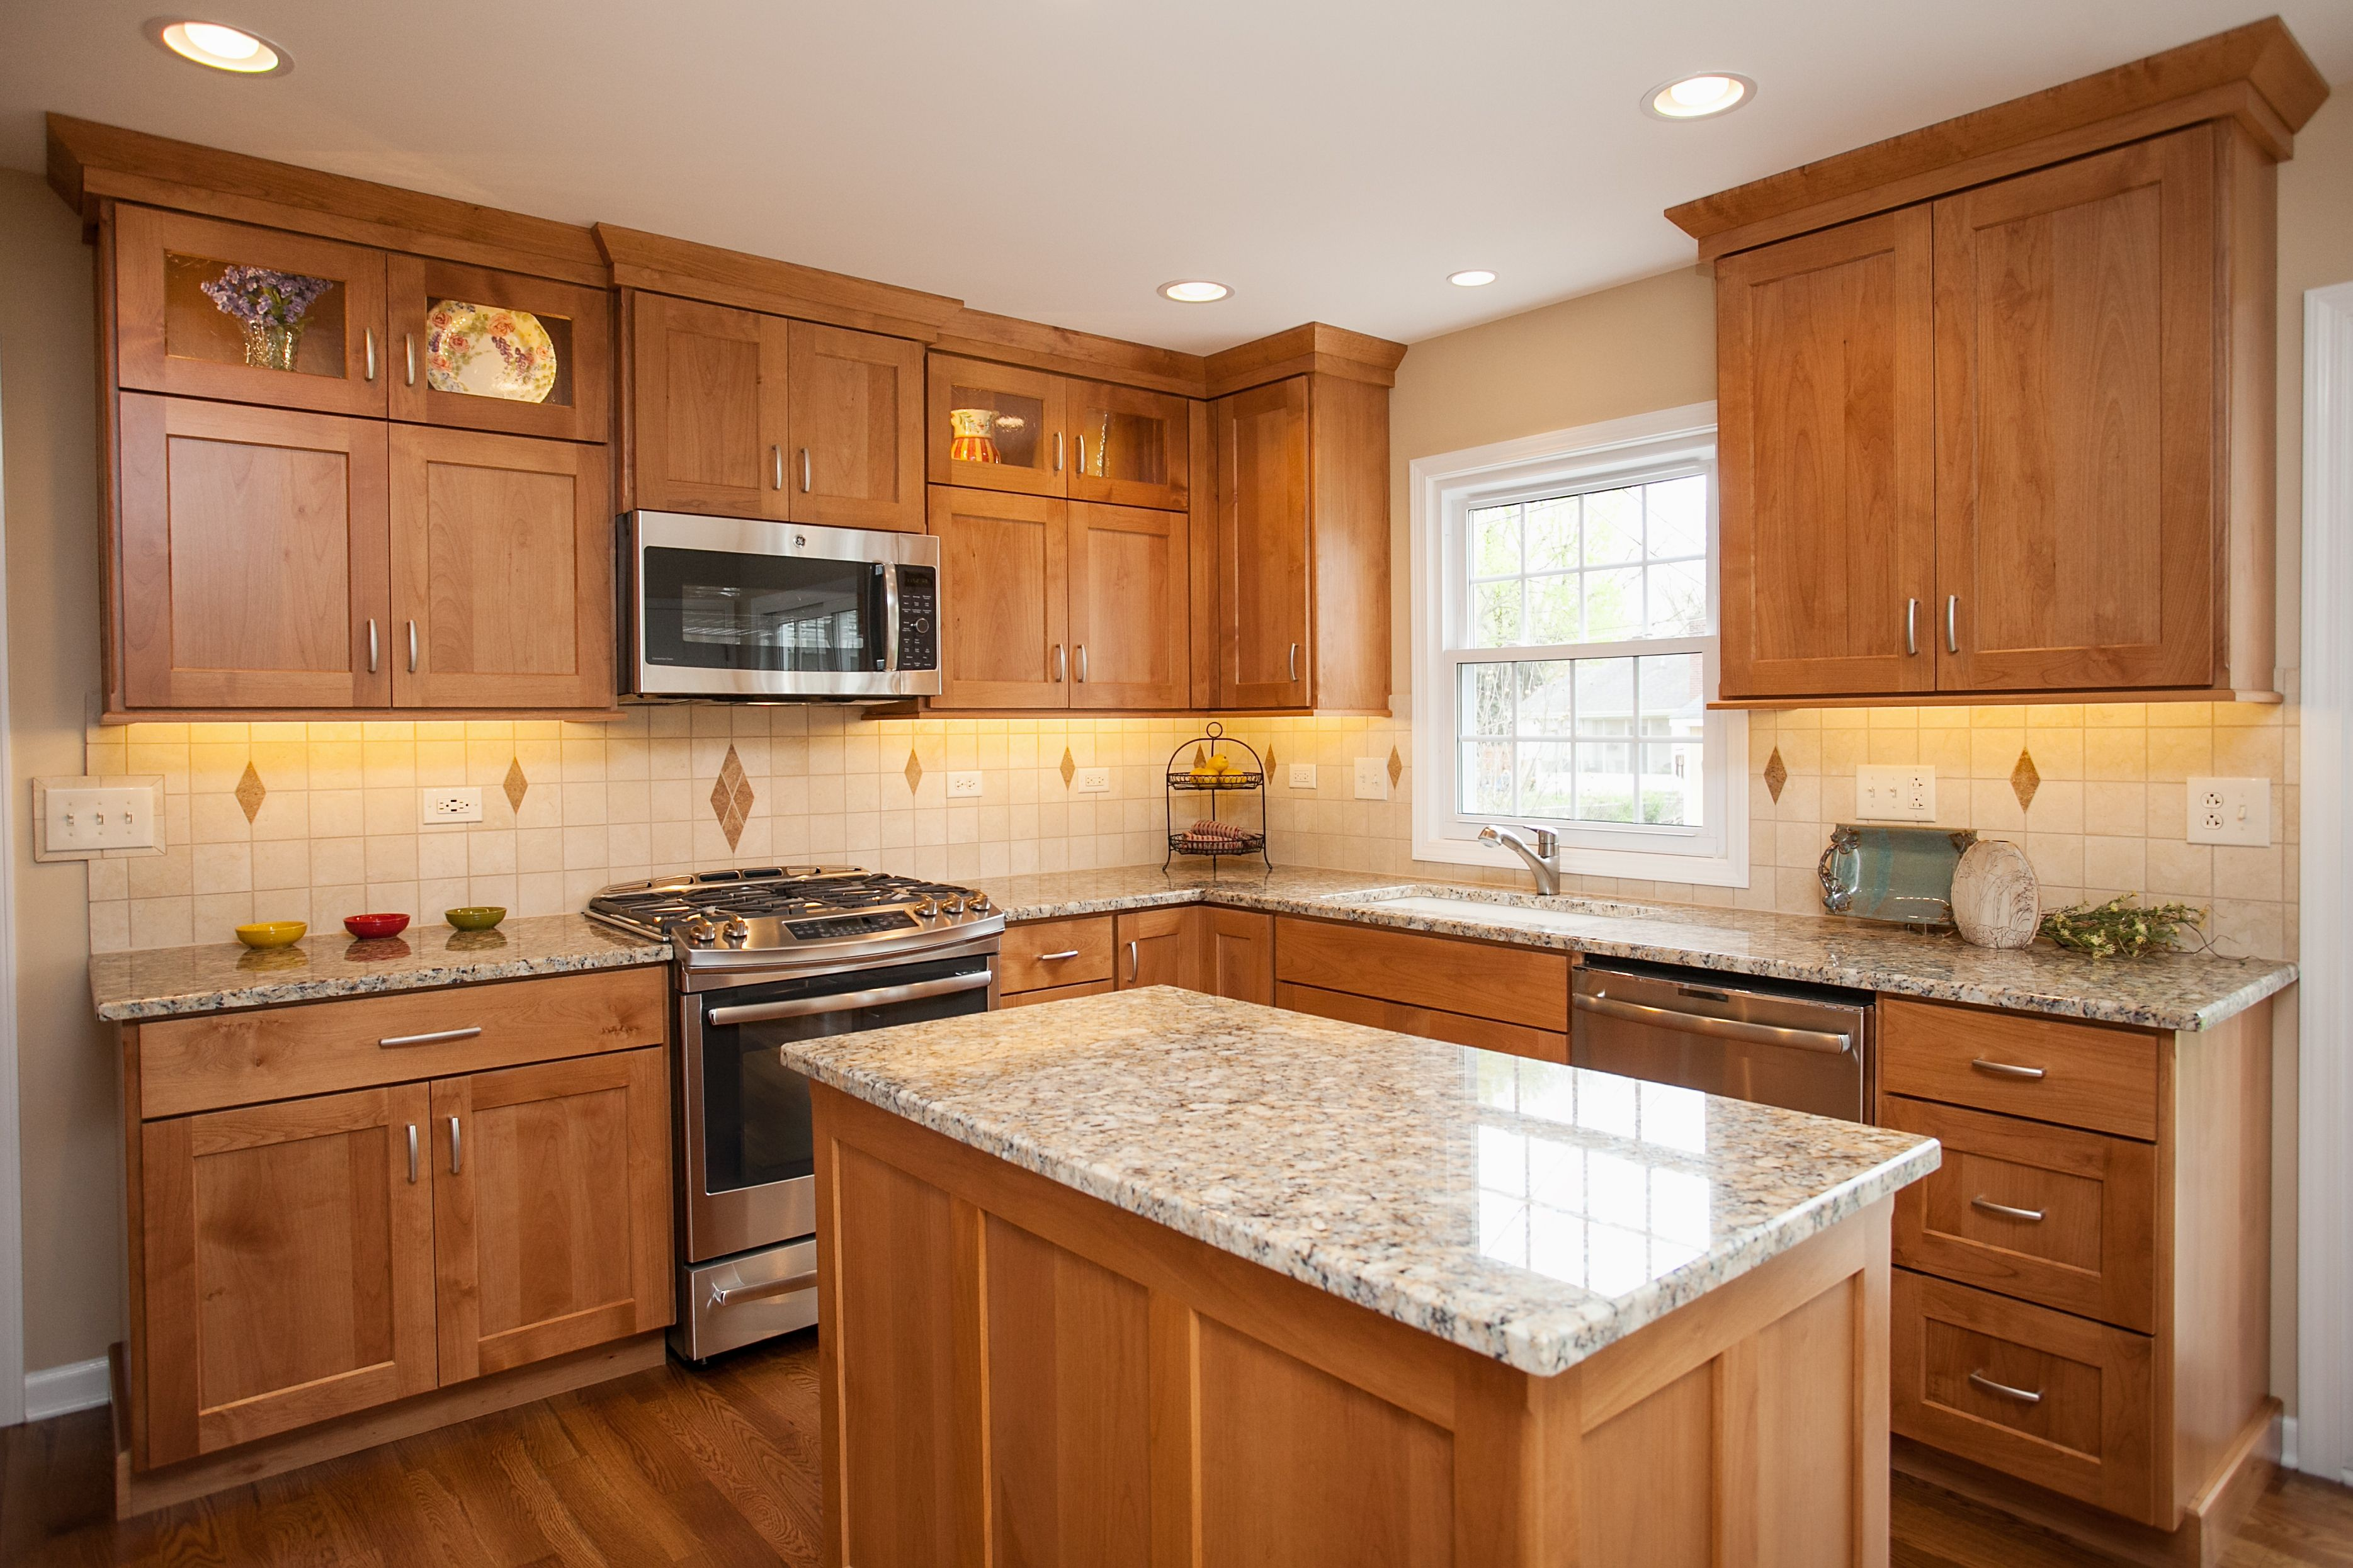 Light Oak Shaker Kitchen Cabinets A Kitchen In The Home Is A Place Which Must Be Hygienic And Clean Fo New Kitchen Cabinets Kitchen Renovation Rustic Kitchen